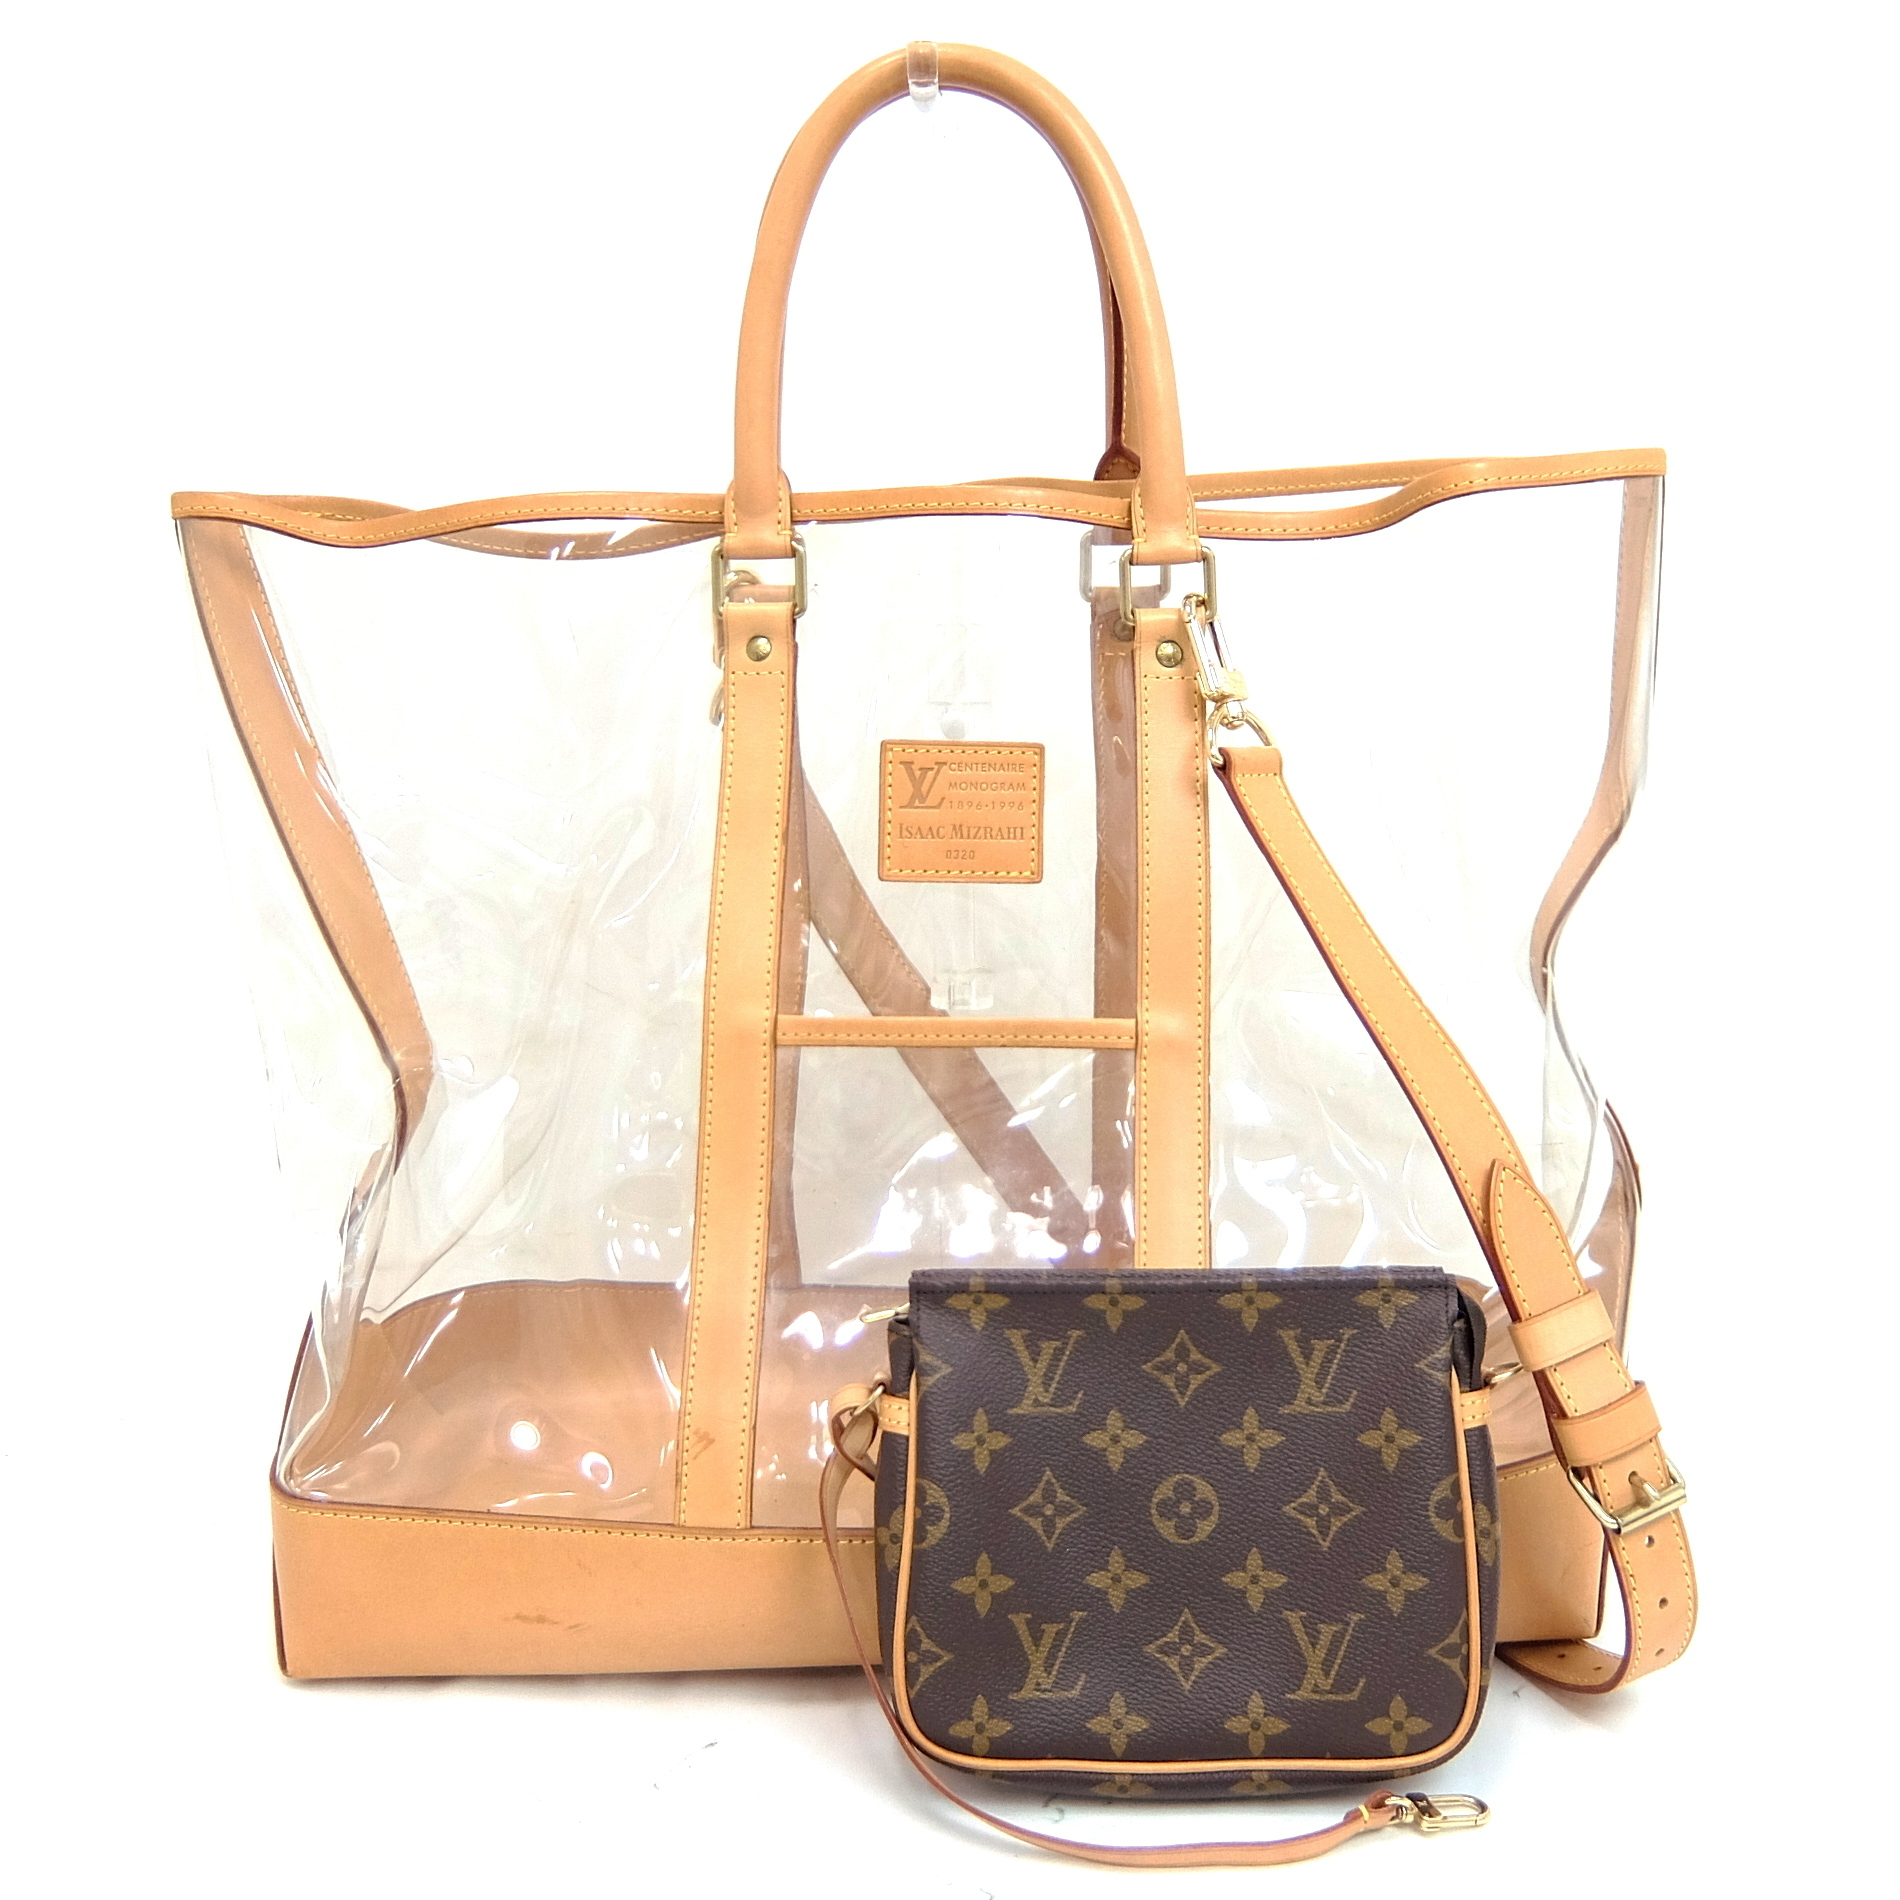 f15ed81a165 Auth Louis Vuitton Monogram Vinyl Isaac Mizrahi Centenaire Sac Weekend Tote  Bag